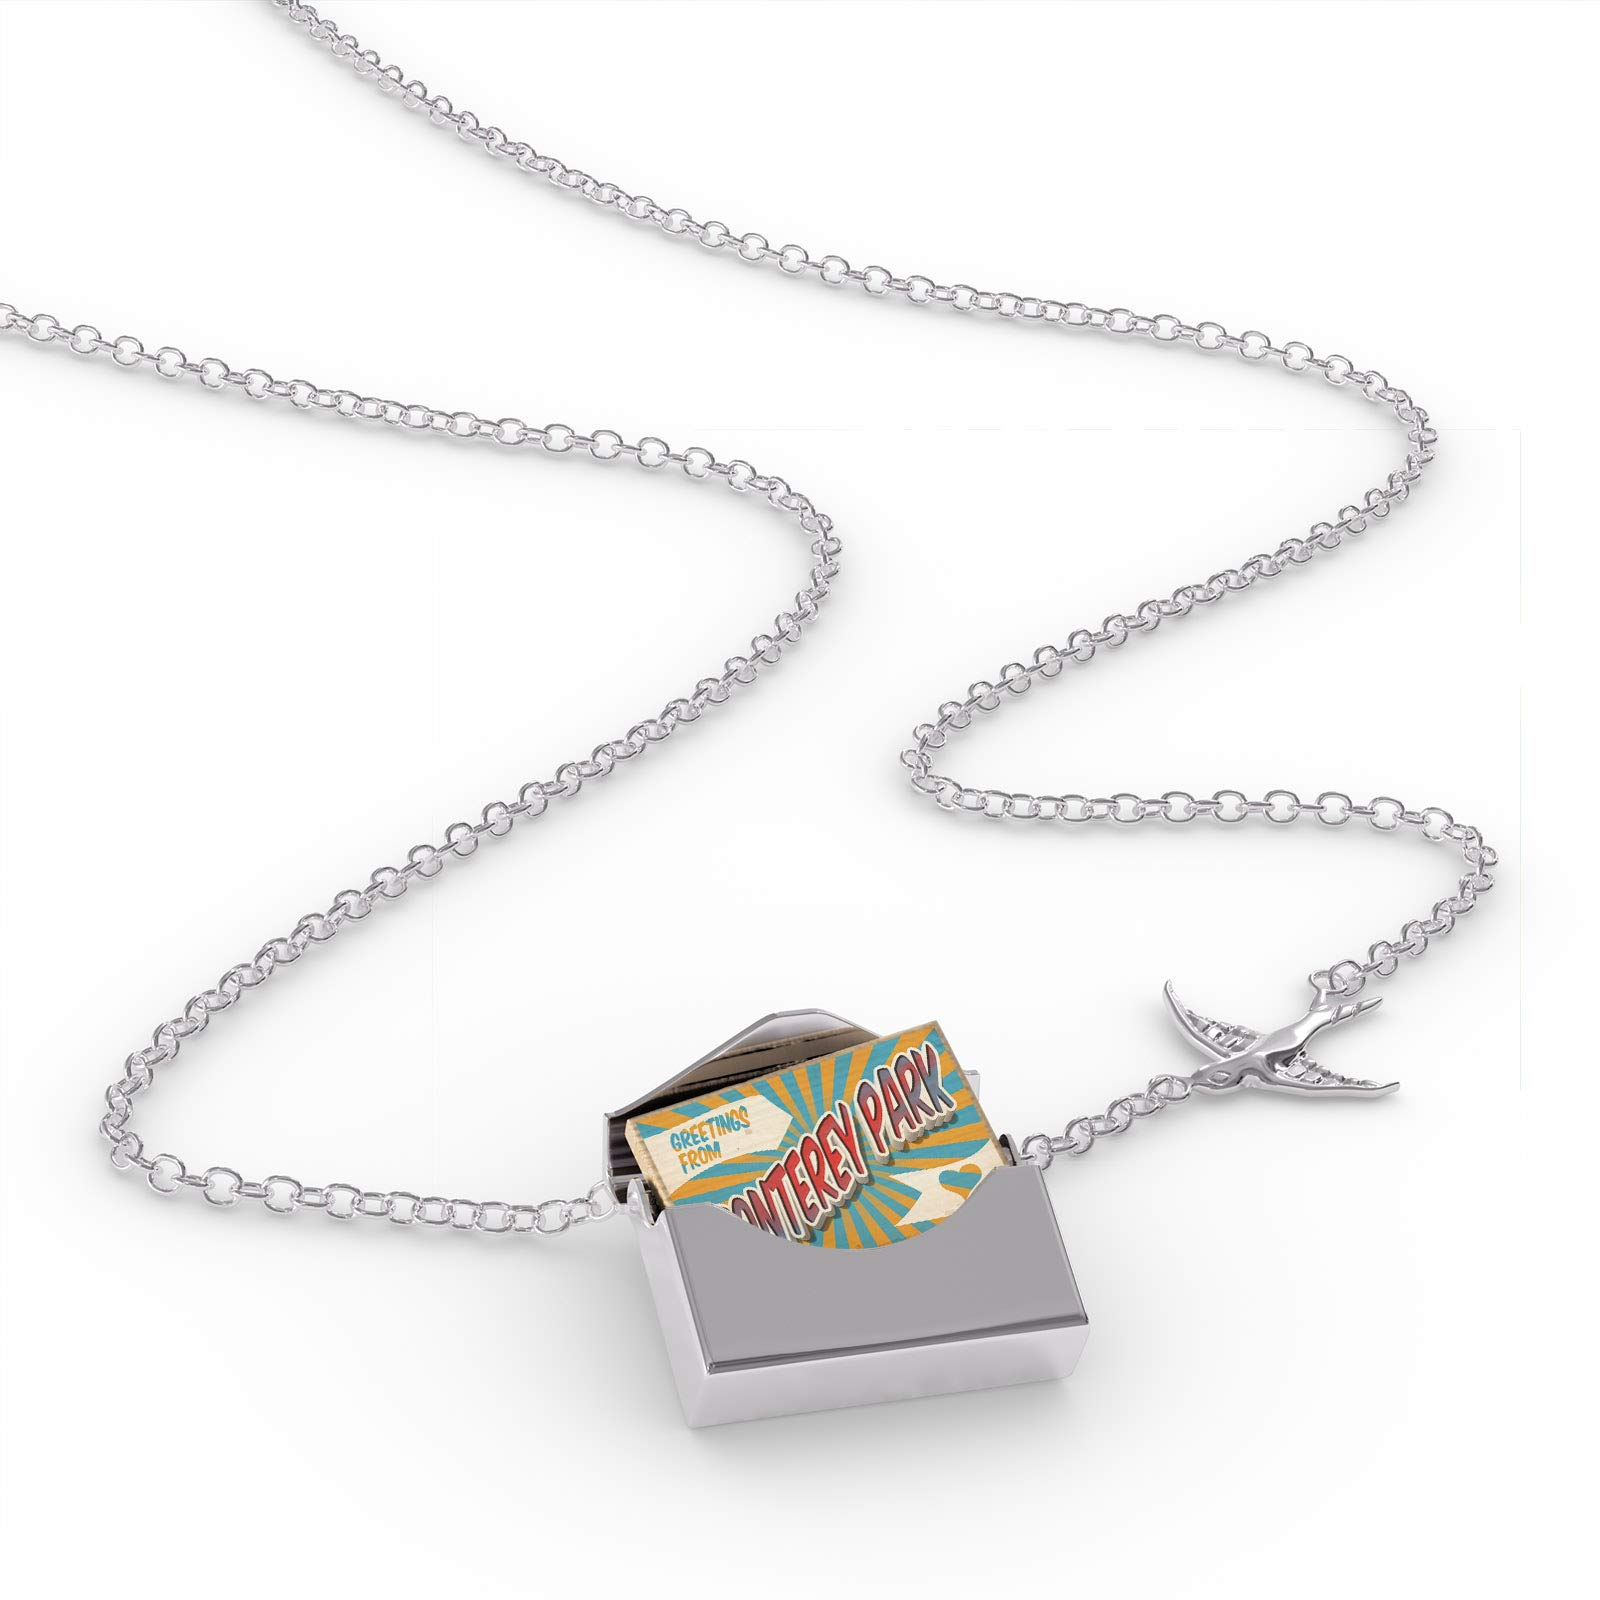 NEONBLOND Locket Necklace Greetings from Monterey Park, Vintage Postcard in a Silver Envelope